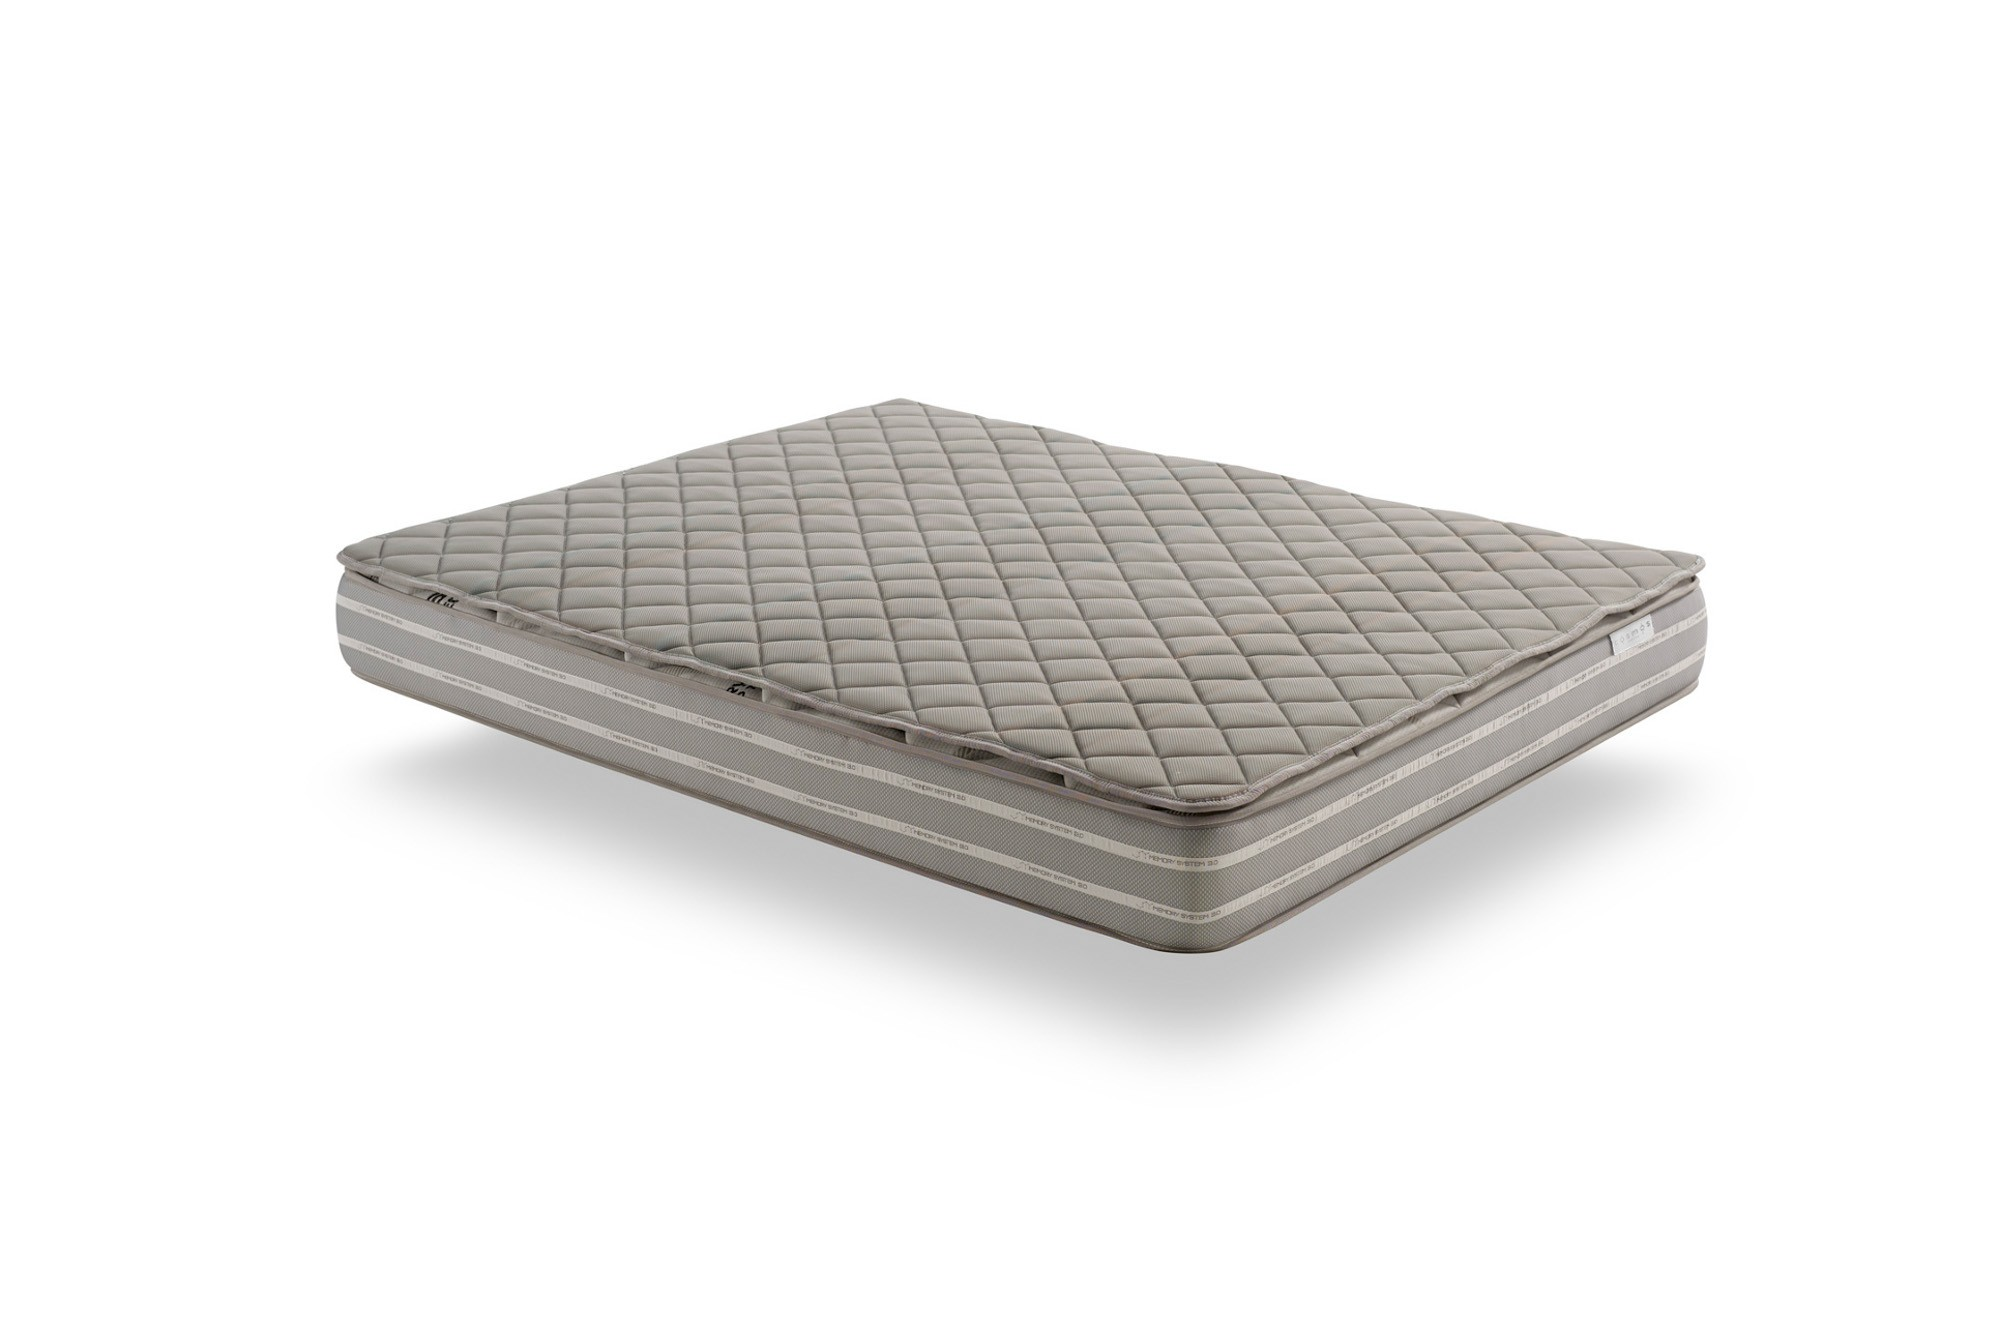 Visco V90 is more breathable than other conventional foams and has been specially designed to prevent dampness in bedding and remove heat.